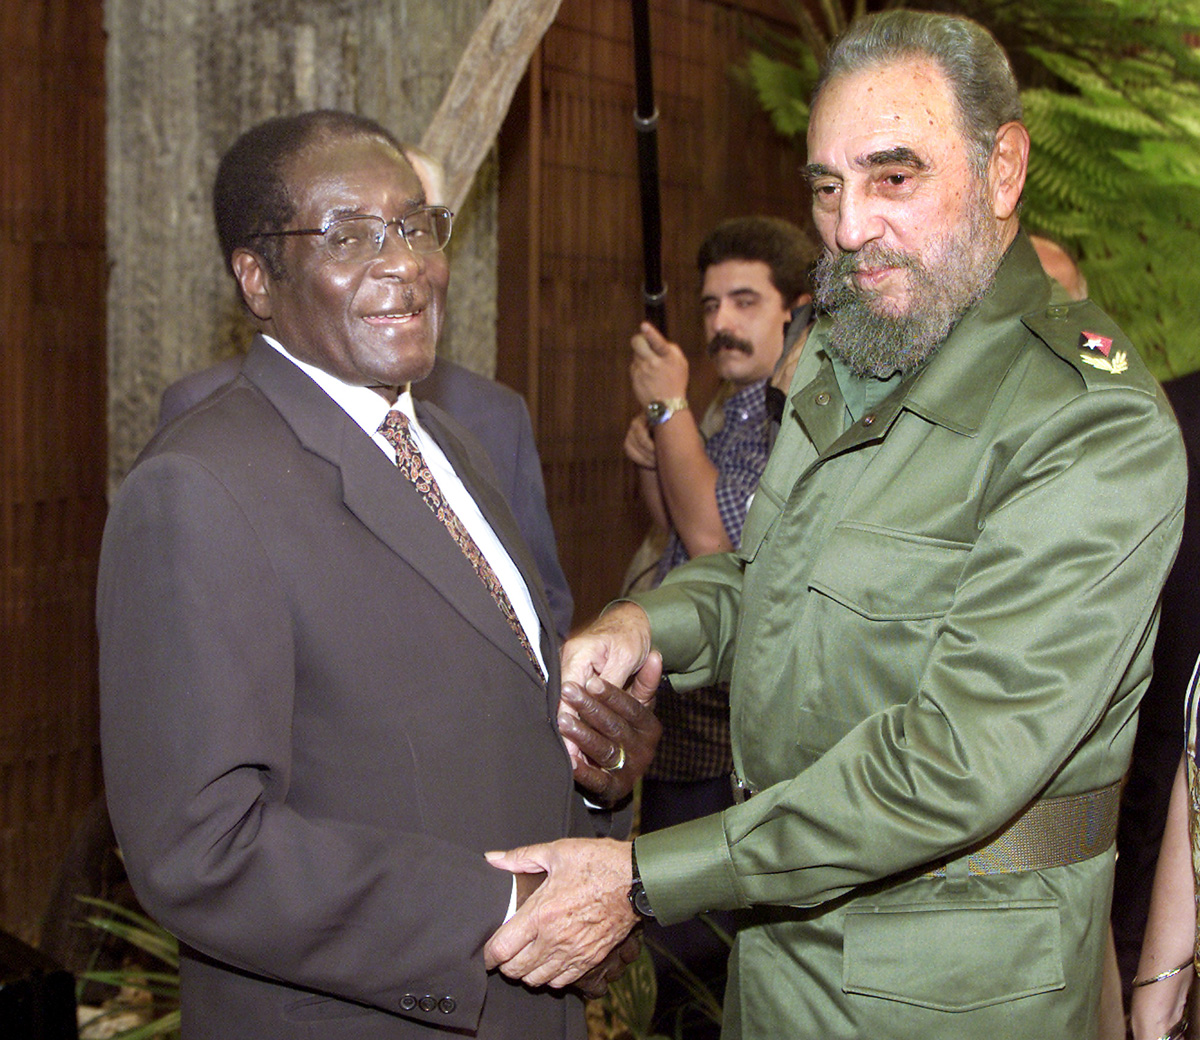 During his time in power, Mugabe met Cuba's President Fidel Castro several times. He praised his government for having trained thousands of Zimbabwean doctors and teachers. [Jose Goitia/AP Photo]